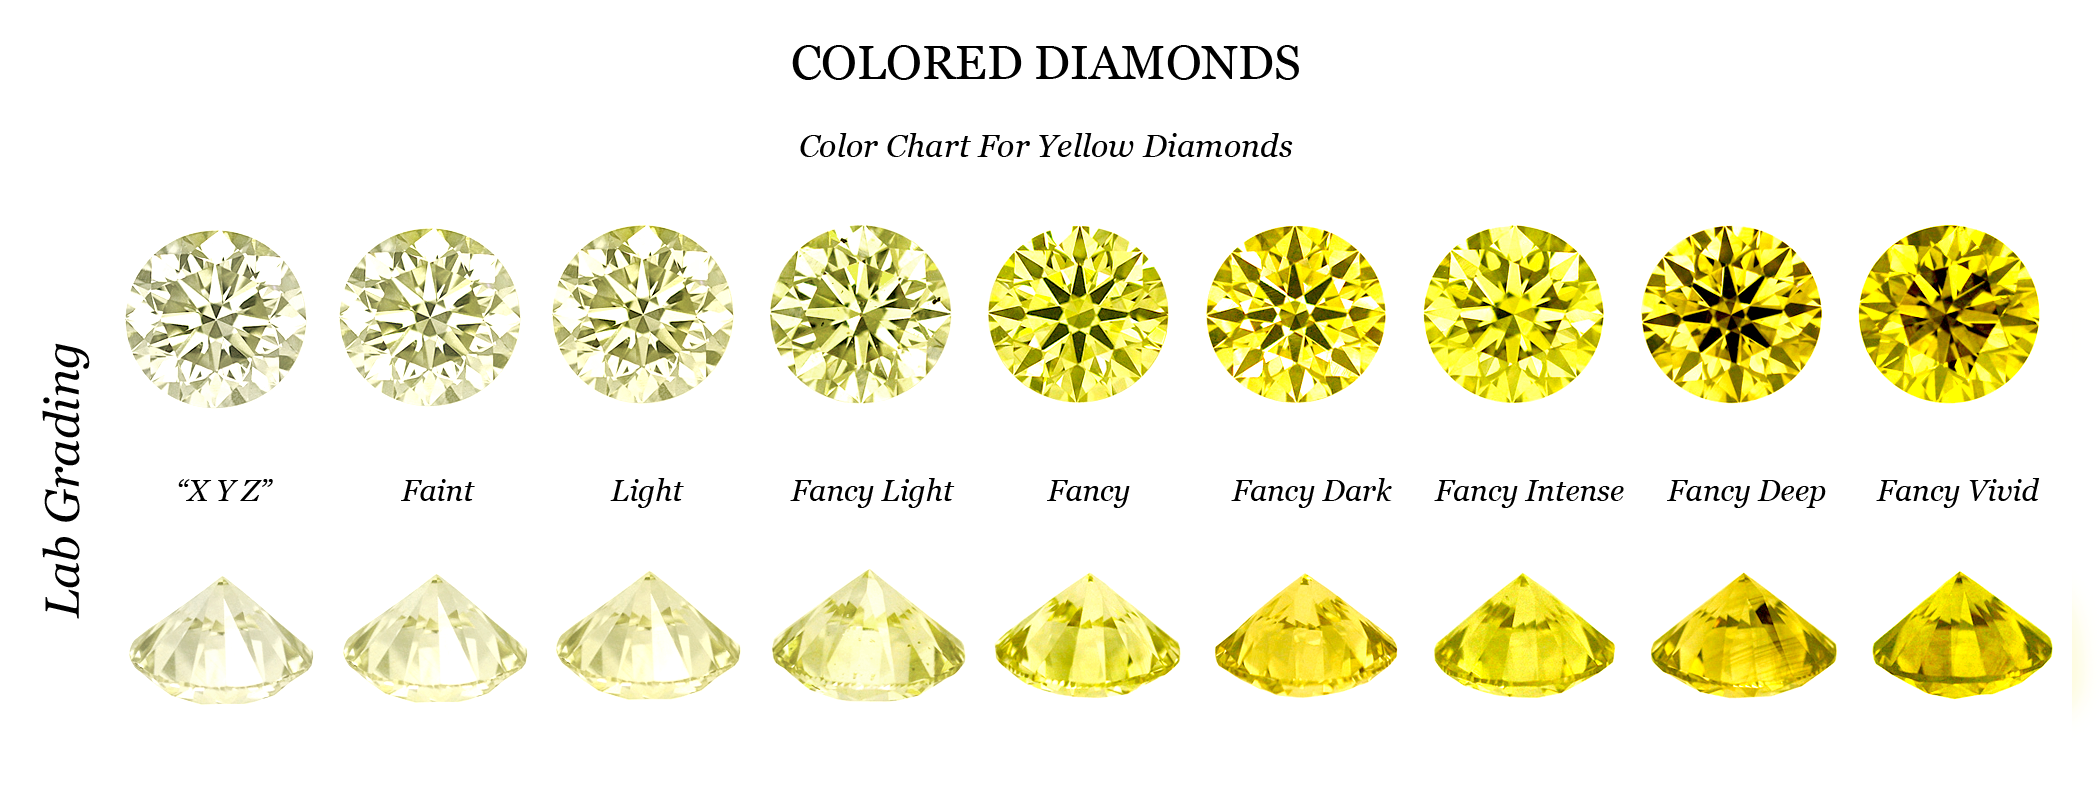 Yellow Diamonds | Colored Diamonds - Fancy Color Diamond Education ...